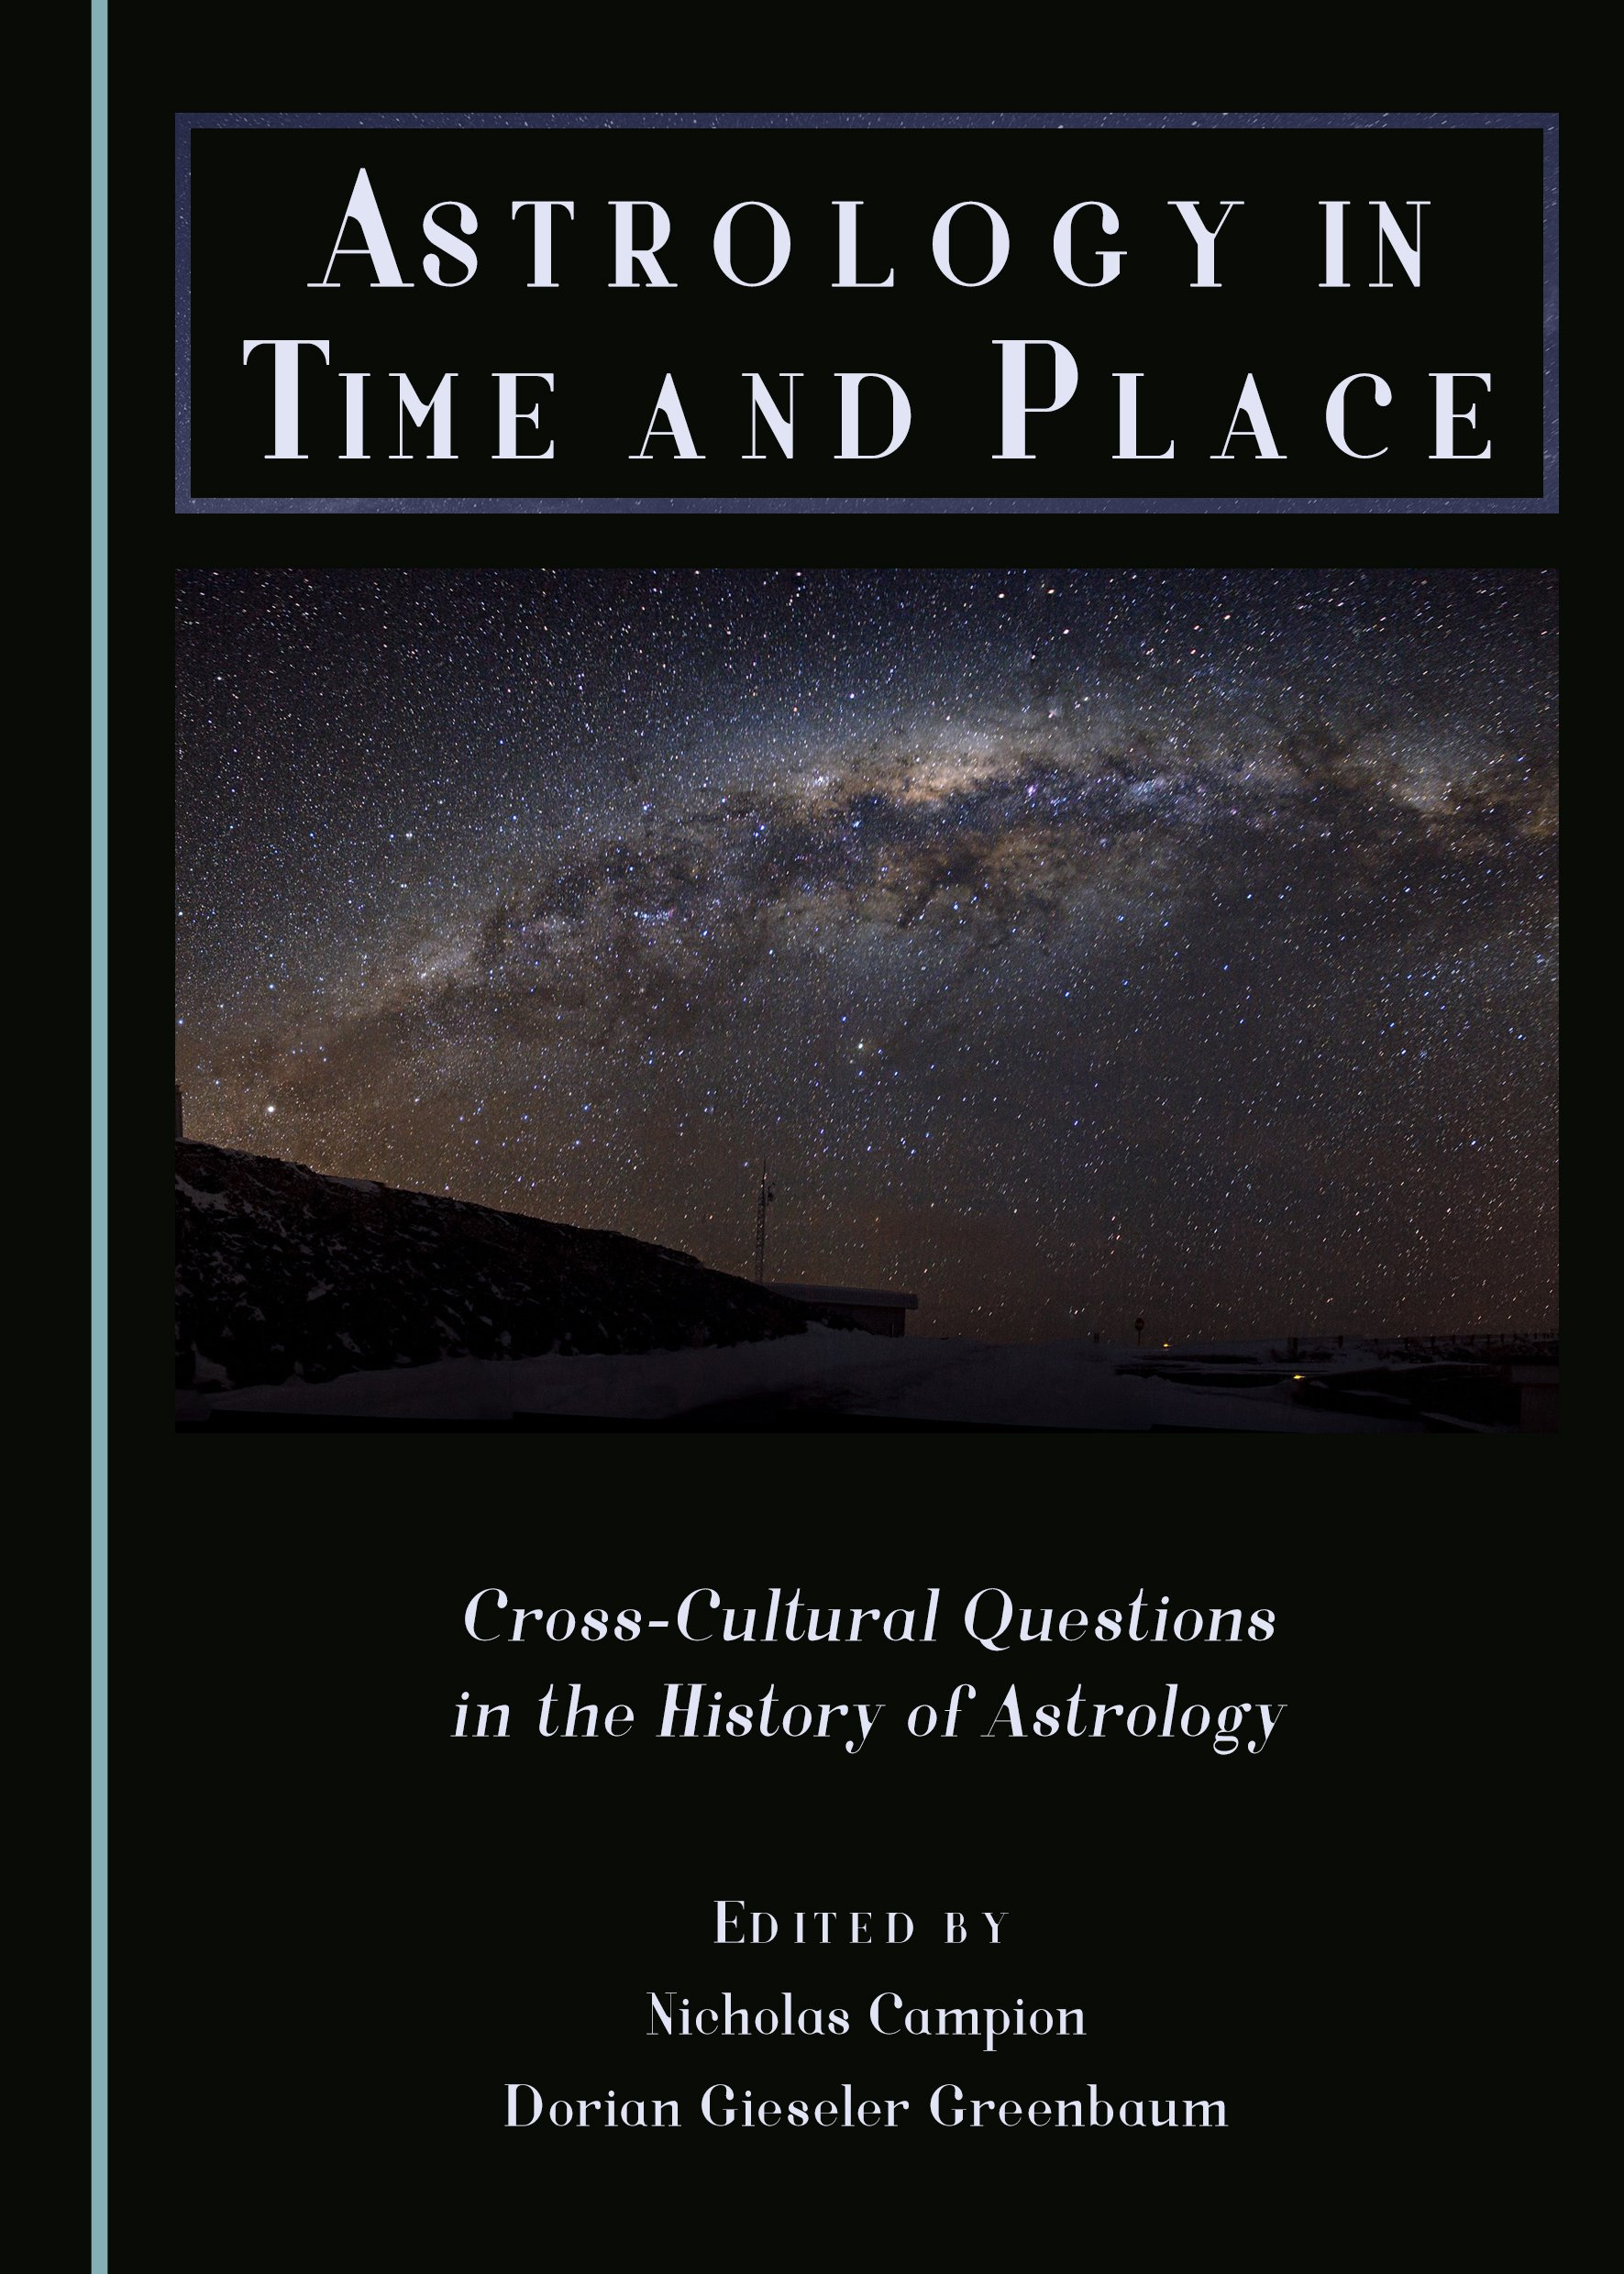 Astrology in Time and Place: Cross-Cultural Questions in the History of Astrology